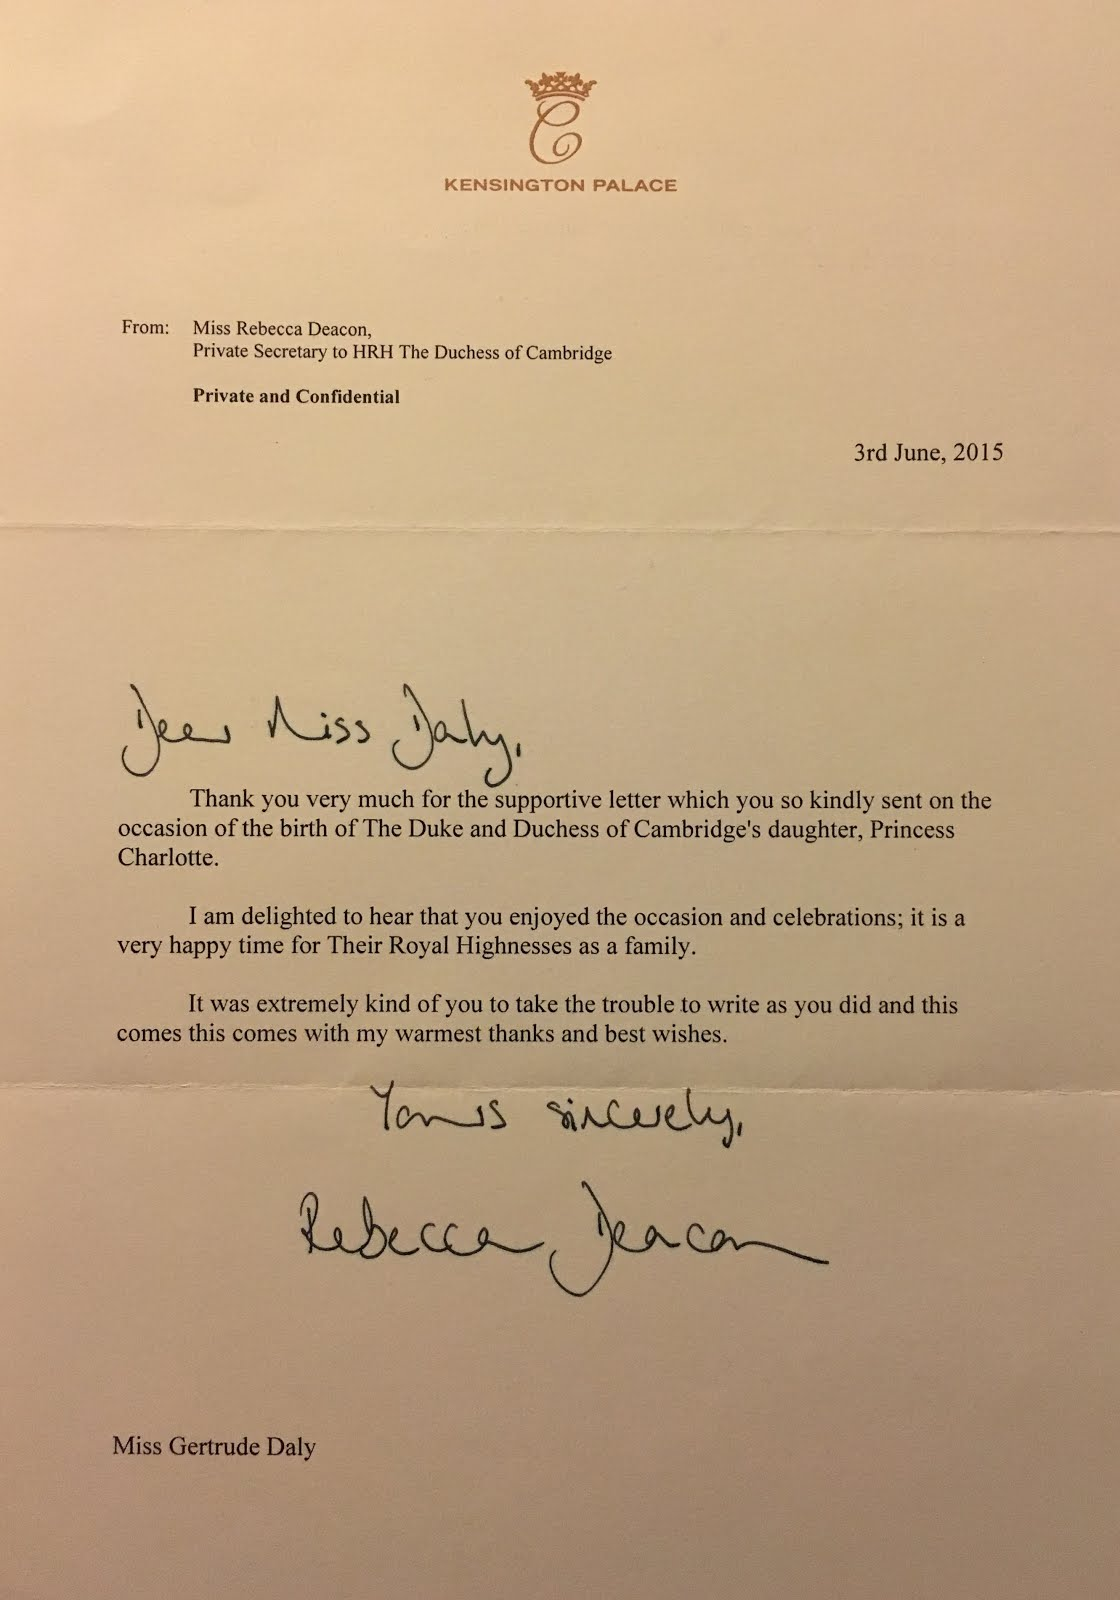 gert u0026 39 s royals  letter from rebecca deacon